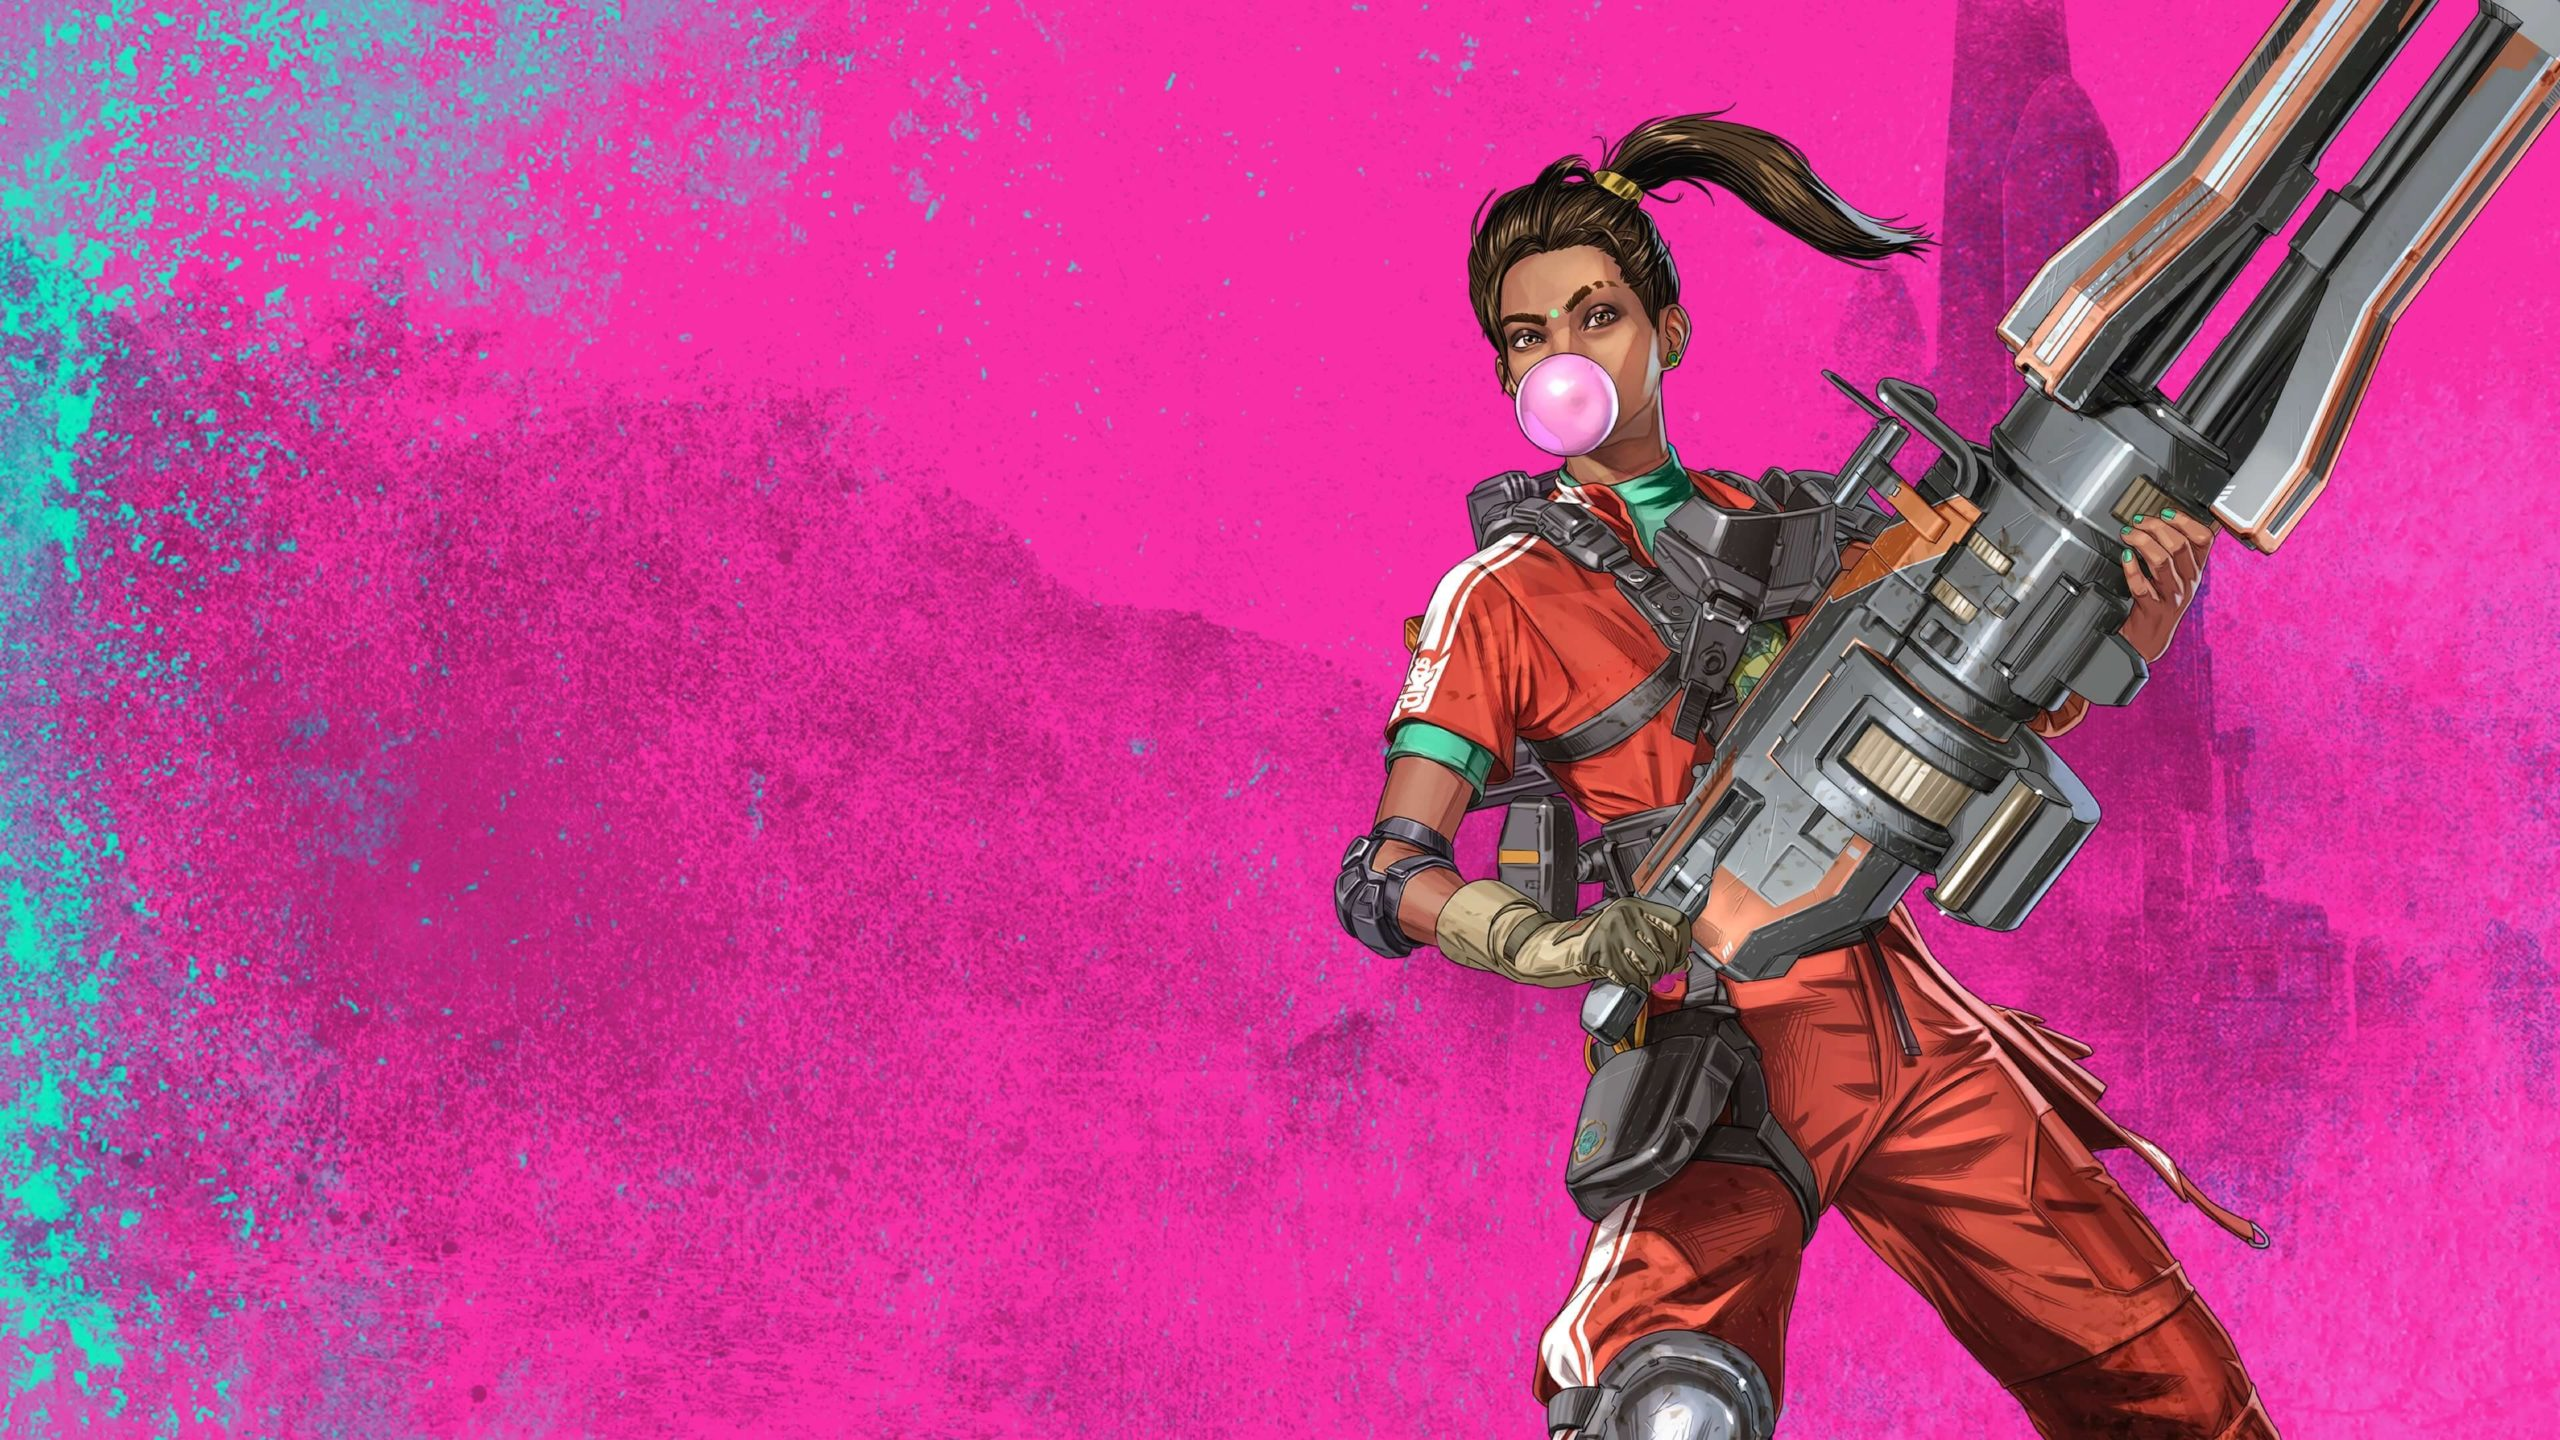 Apex Legends Season 6 brings us Rampart and a new crafting system